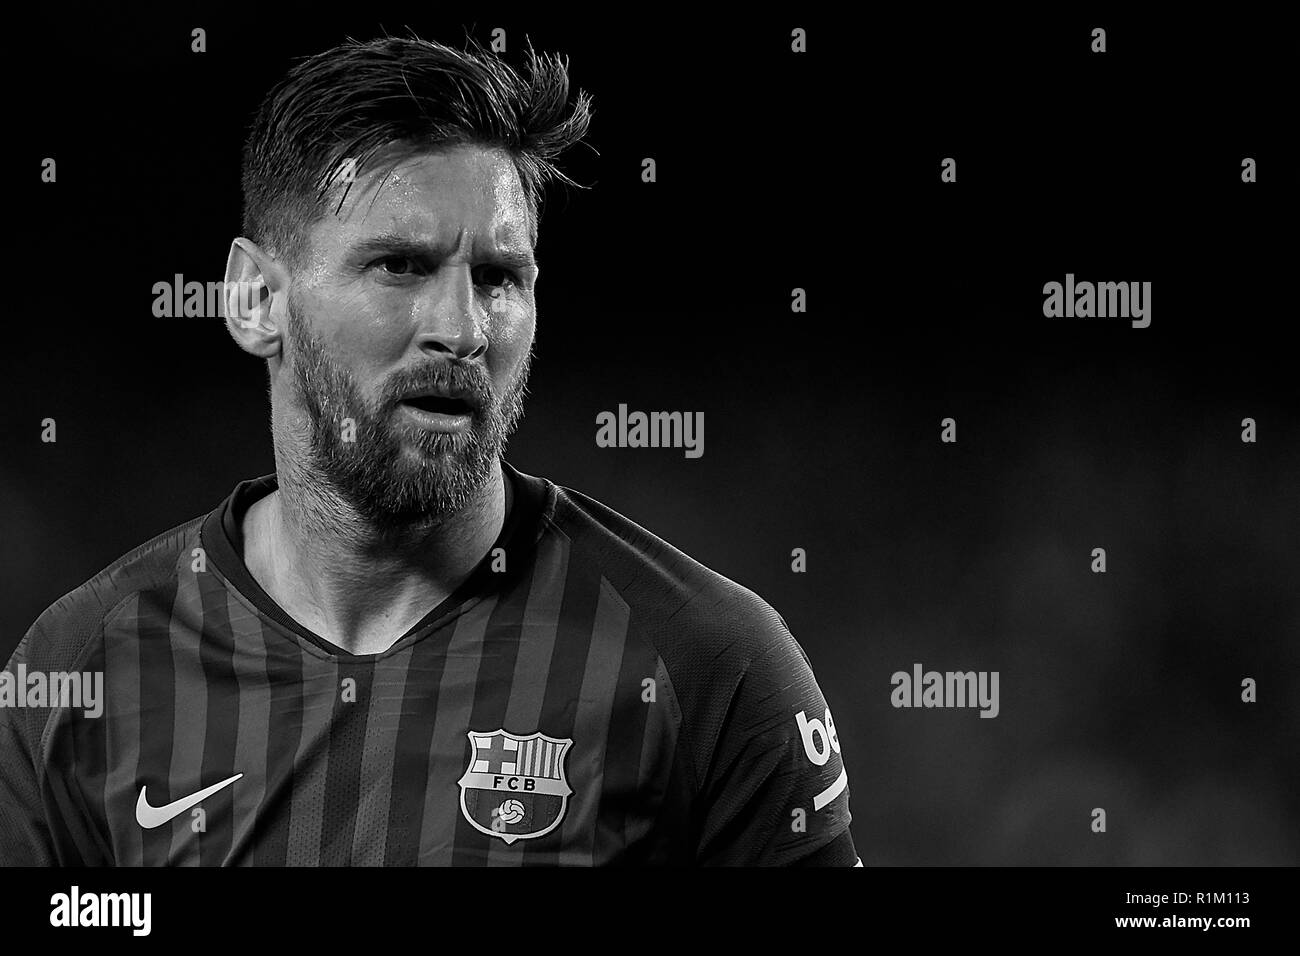 Leo Messi Black And White Stock Photos Images Alamy